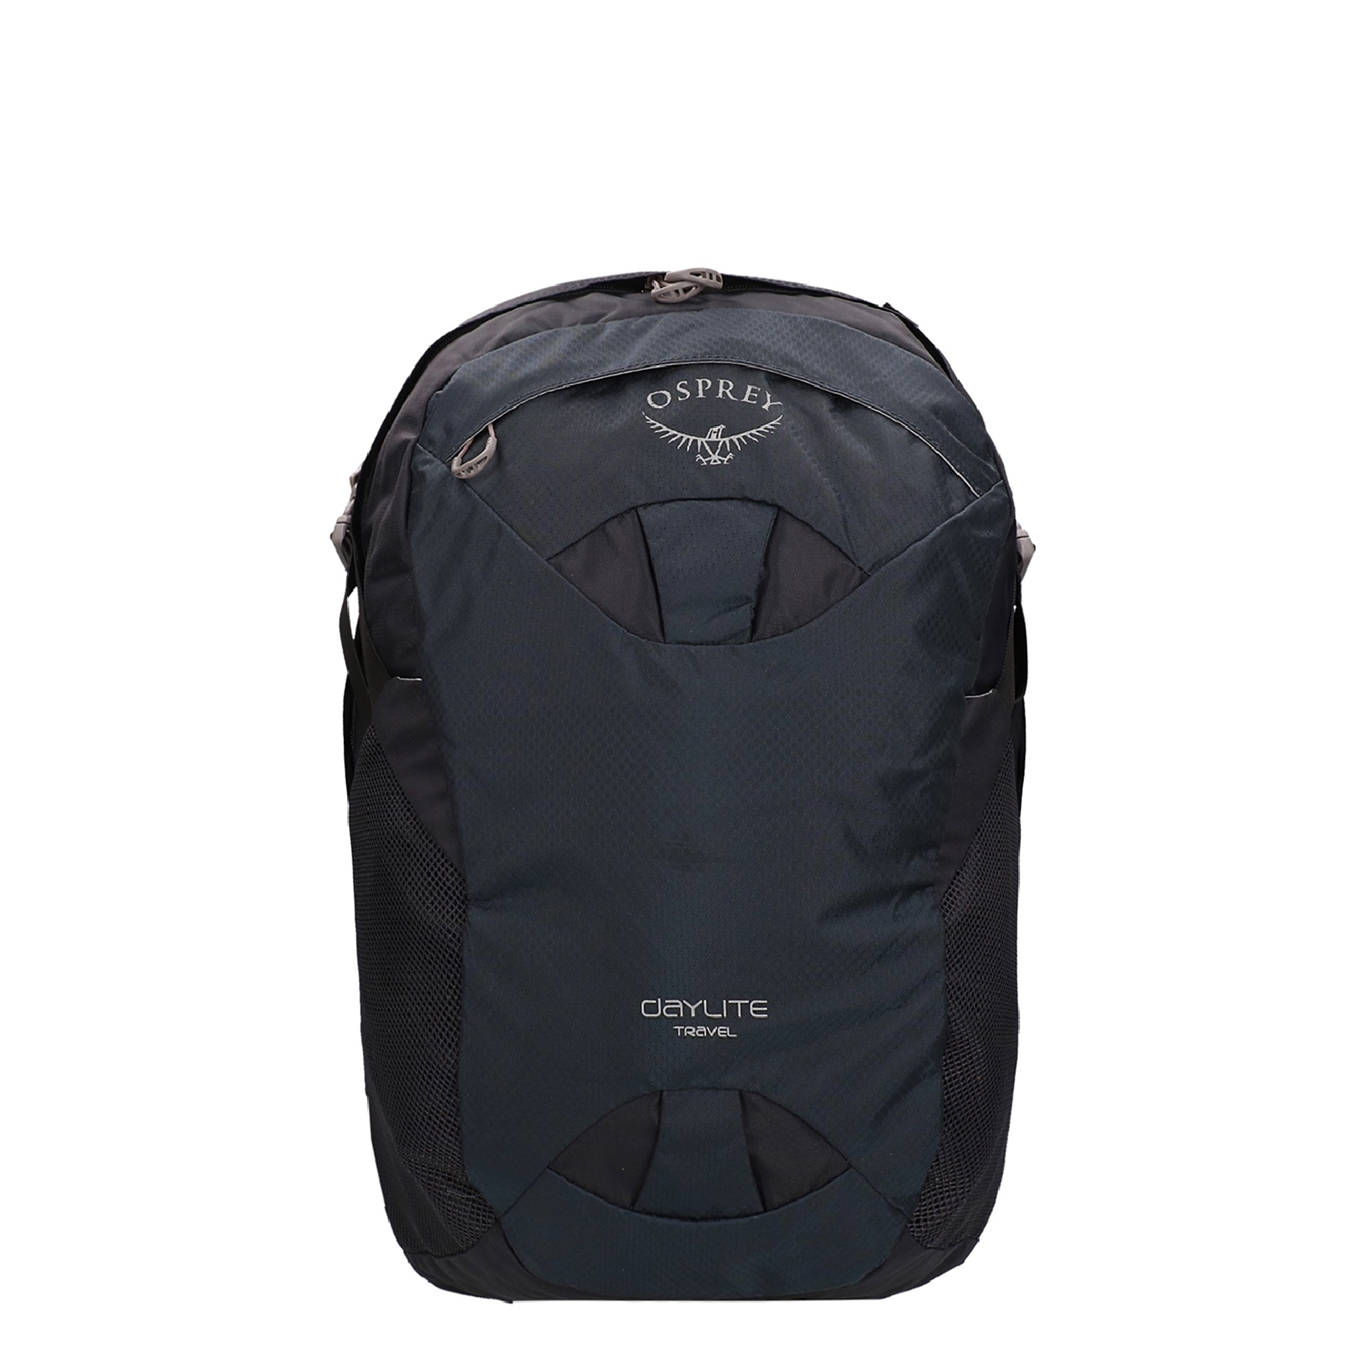 Osprey Daylite Travel Backpack black backpack